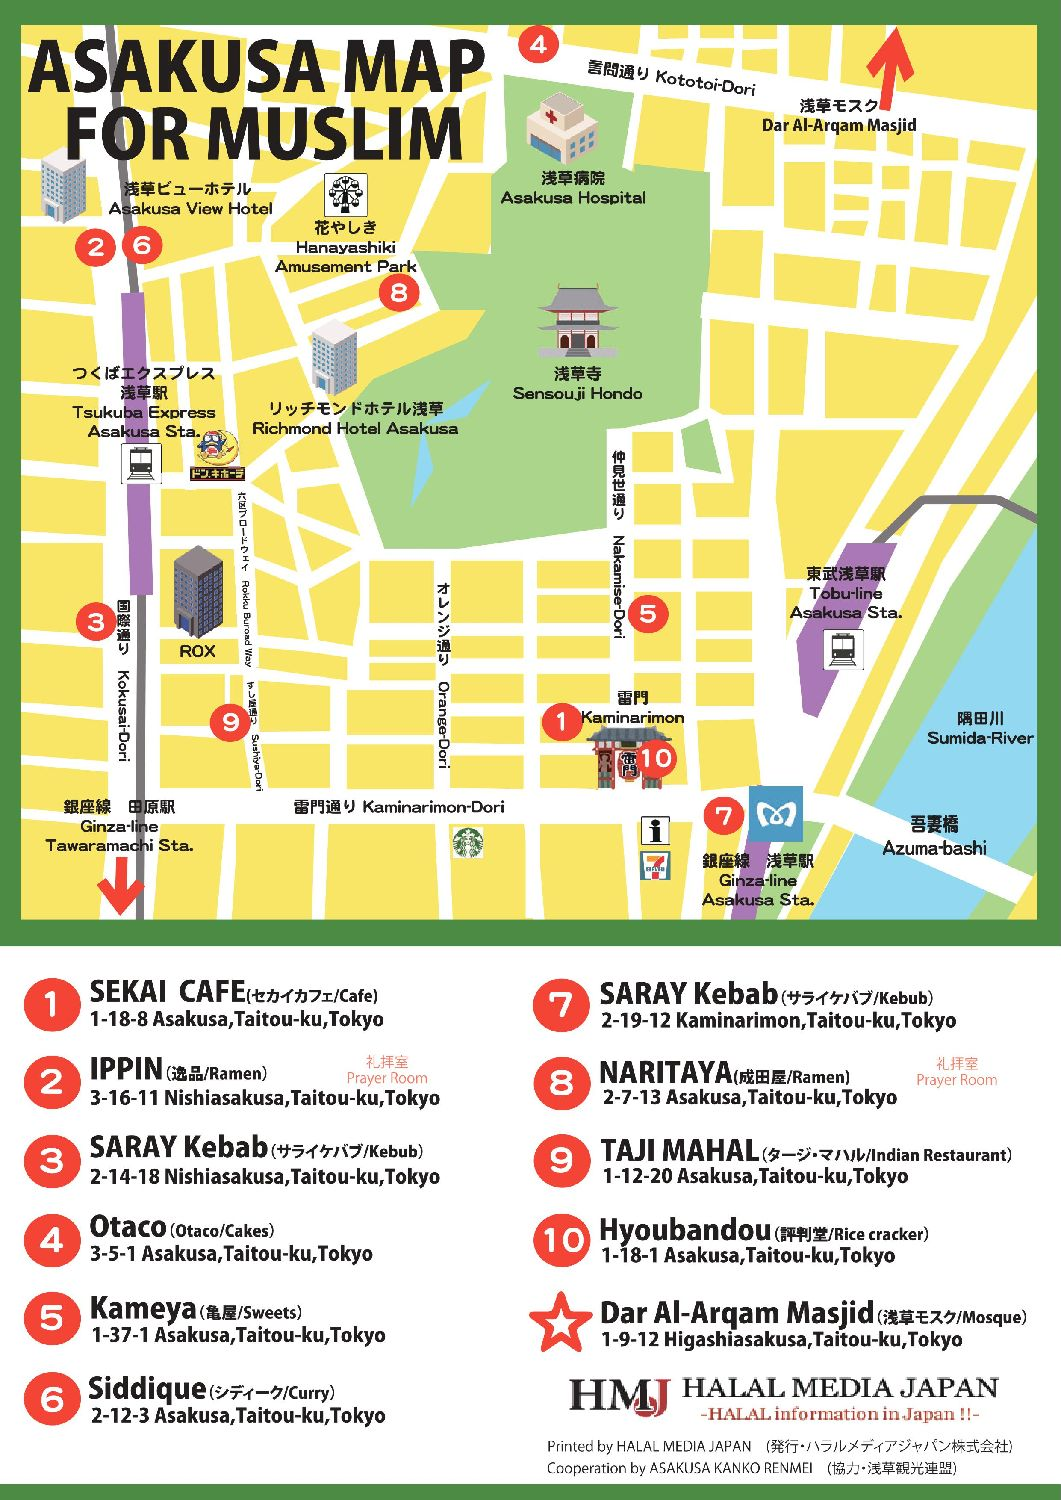 HMJ has created ASAKUSA MAP FOR MUSLIM Halal Media Japan